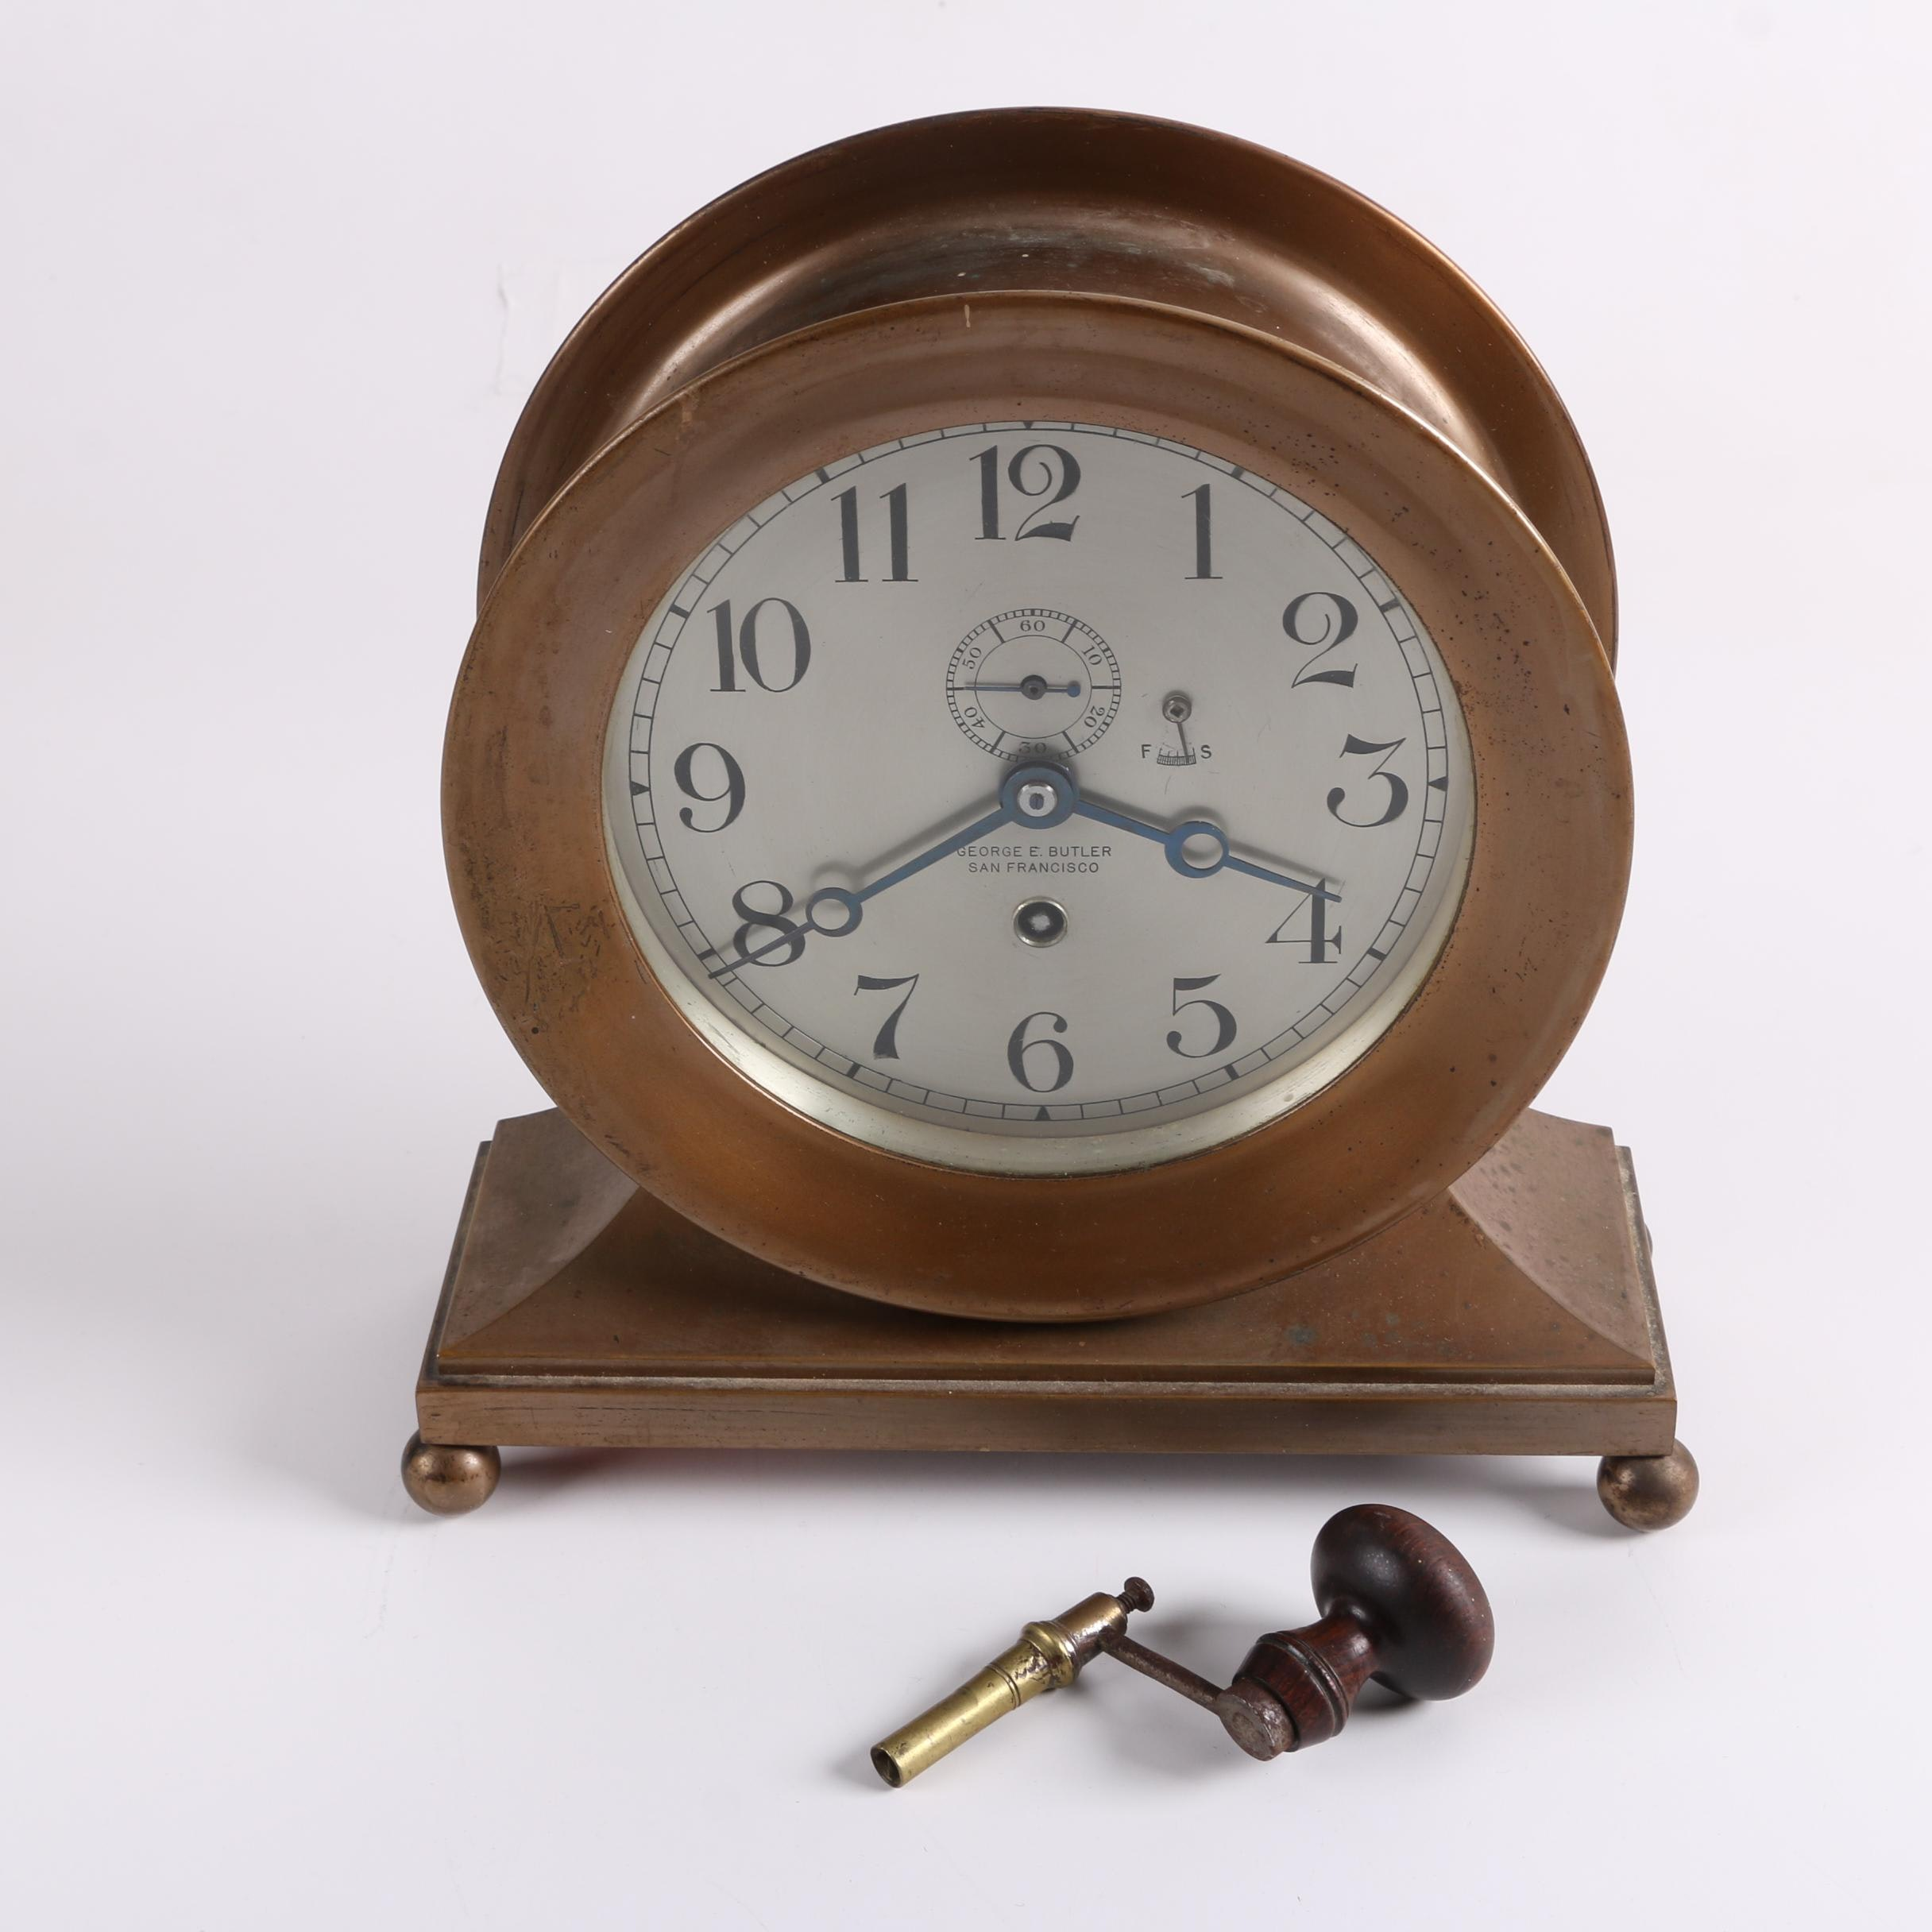 Semi-Antique Chelsea Ship's Bell Clock for George E. Butler Co.